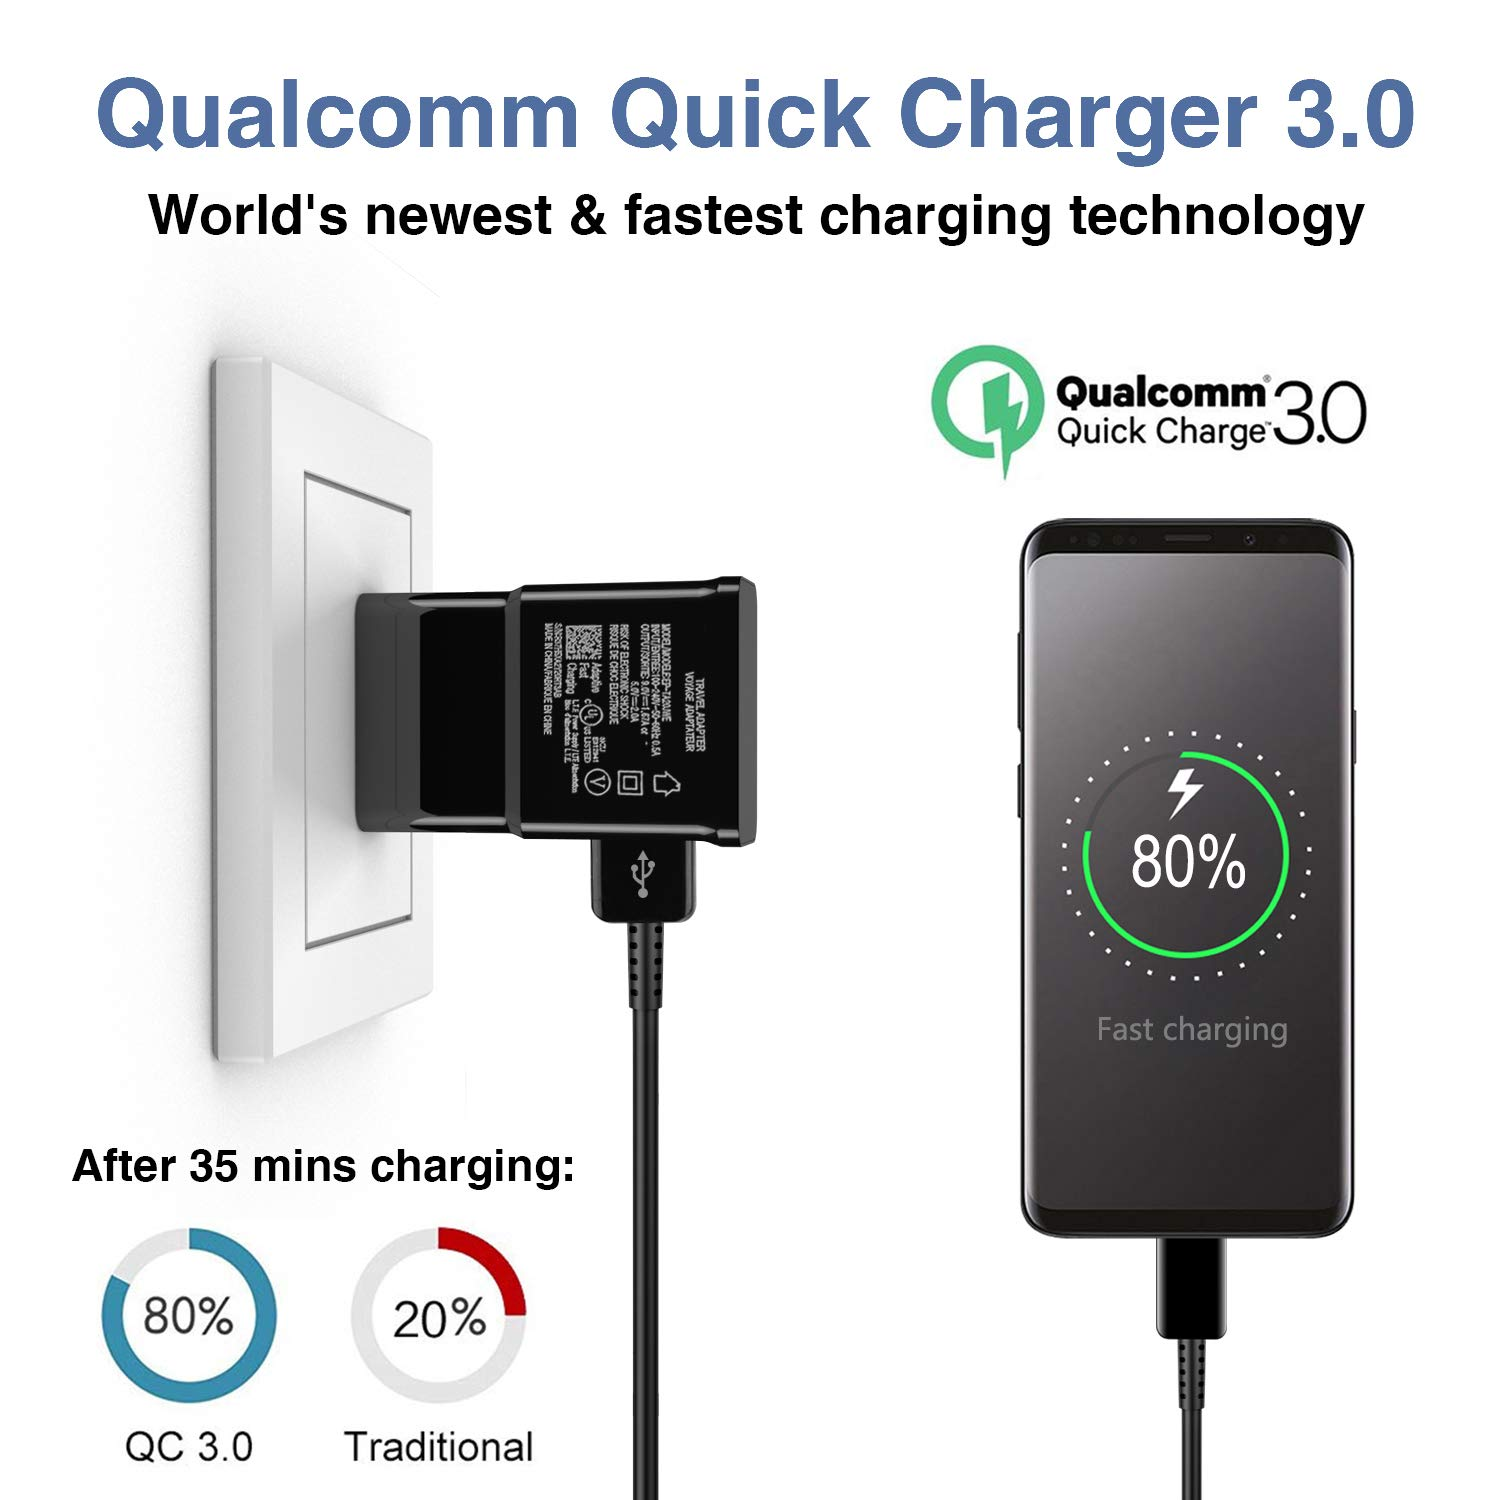 Google Pixel 2 Nexus 5X 6p Baoota Quick Charge 3.0,USB Type-C Cable with Adaptive Fast Wall Charger Compatible for Samsung Galaxy S8 S8 Plus S9 S9 Plus,LG G6 G5 V30 V20